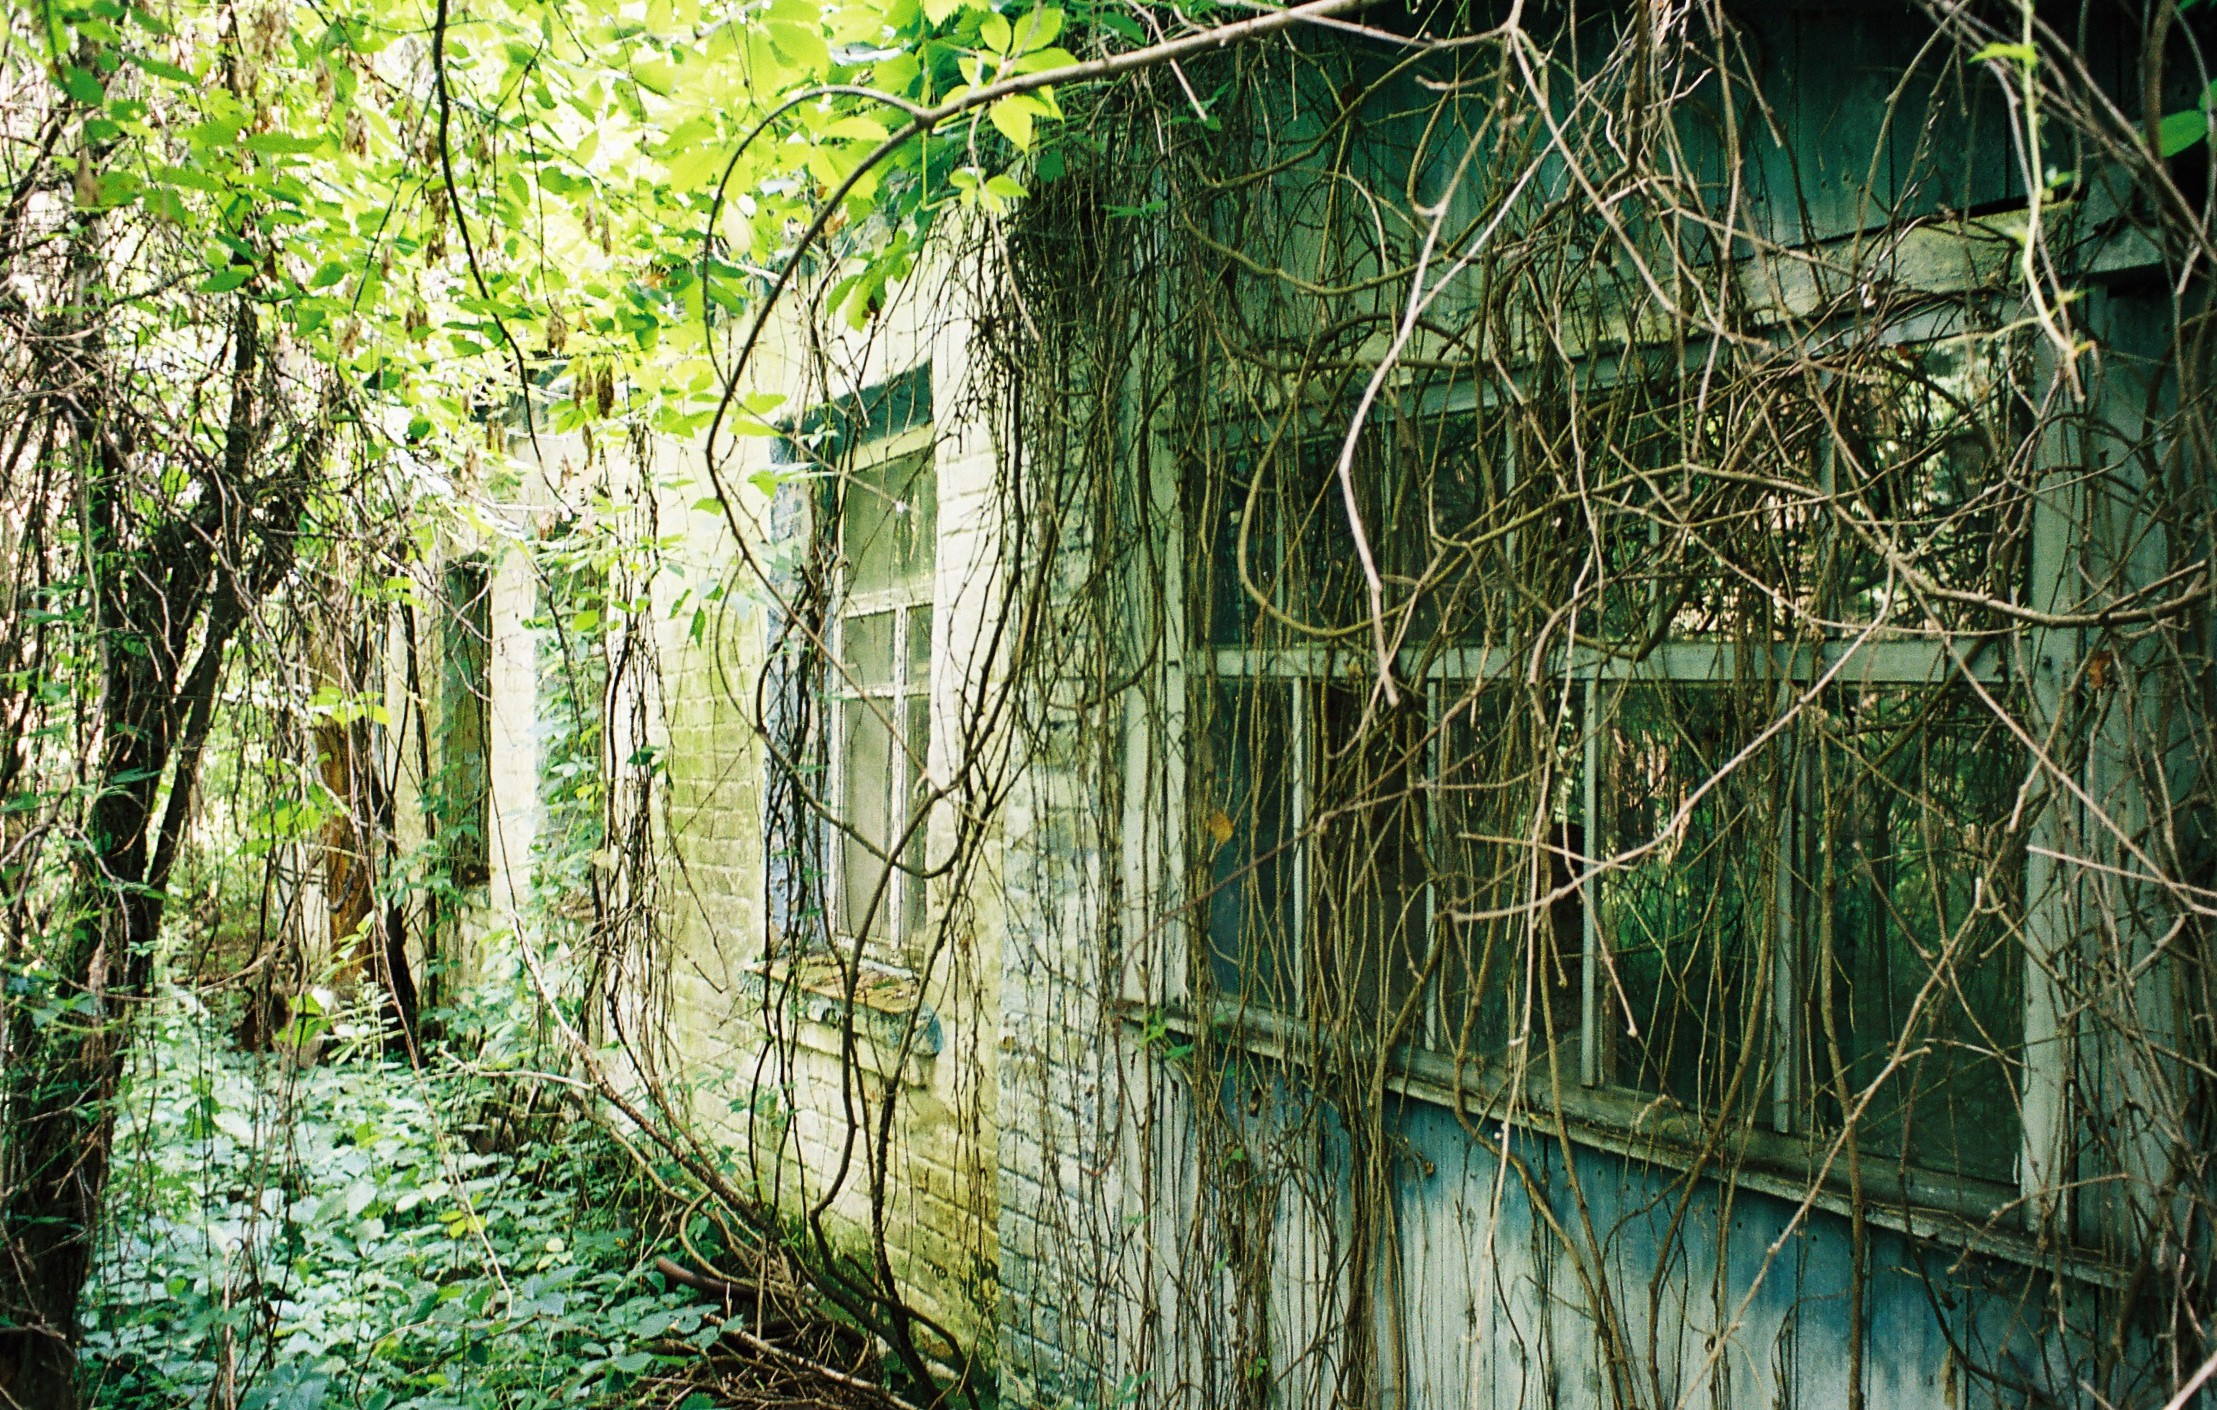 country cottages are lost under lush vegetation so rance ian